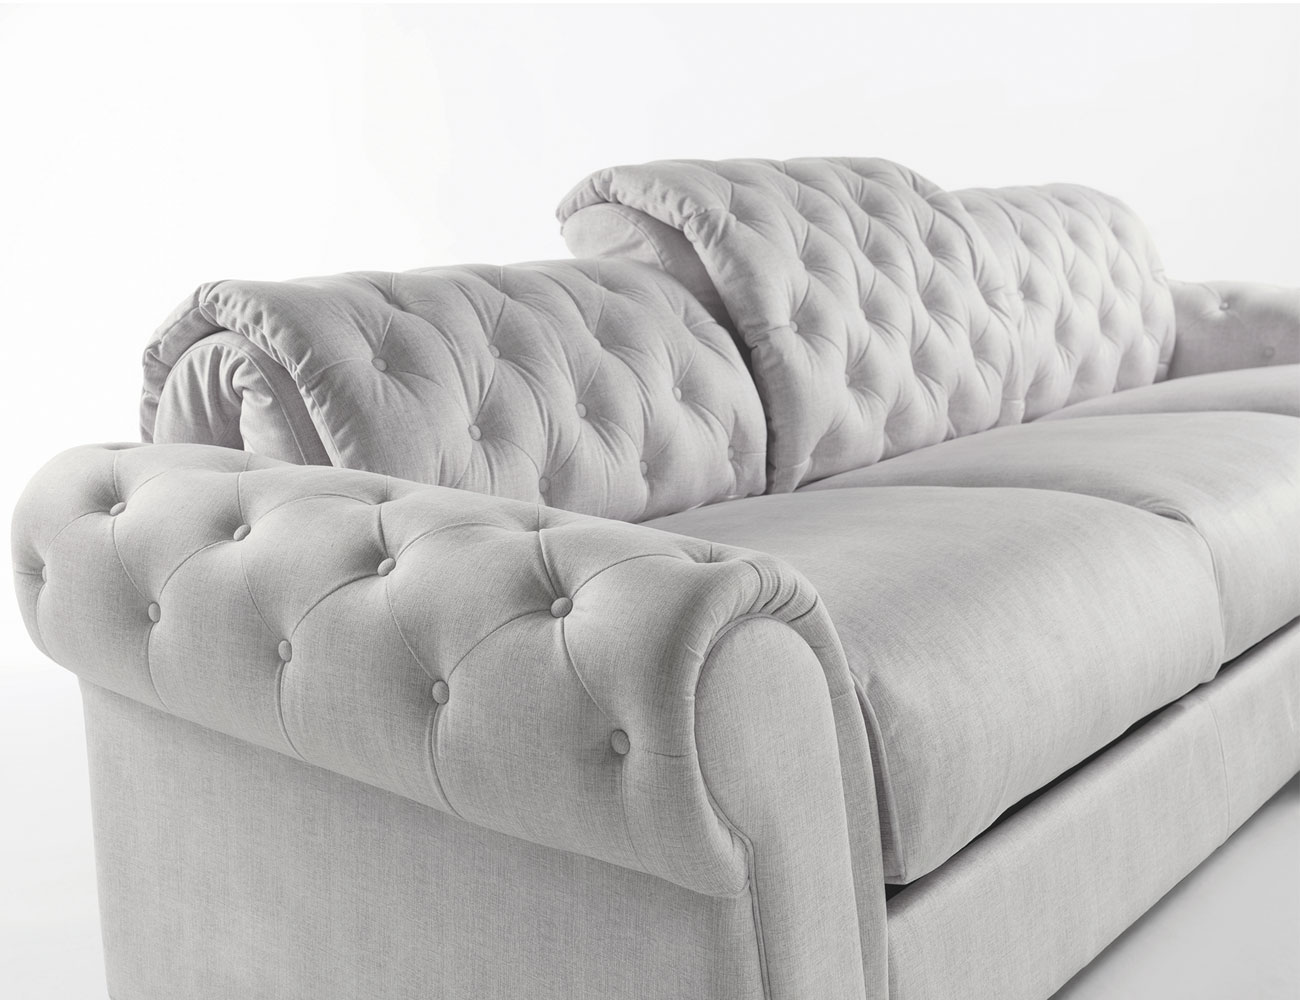 Sofa chaiselongue gran lujo decorativo capitone blanco tela 121